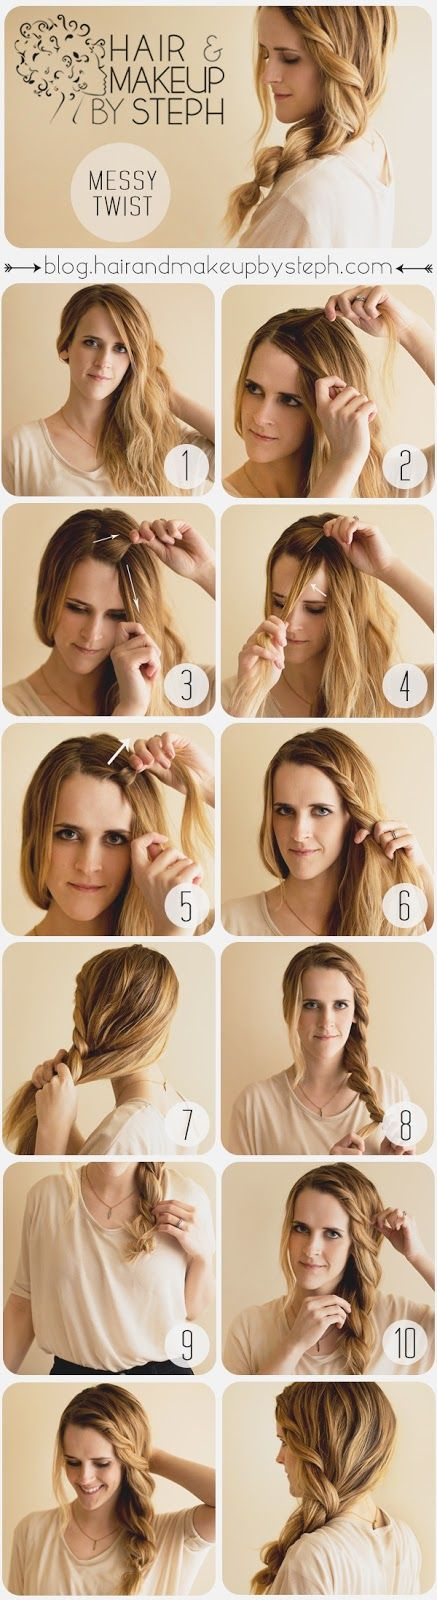 How To Do Hairstyles ever wondered how to do the bouffant hair style heres that info Top 10 Super Fast Hairstyles To Do In Your Car